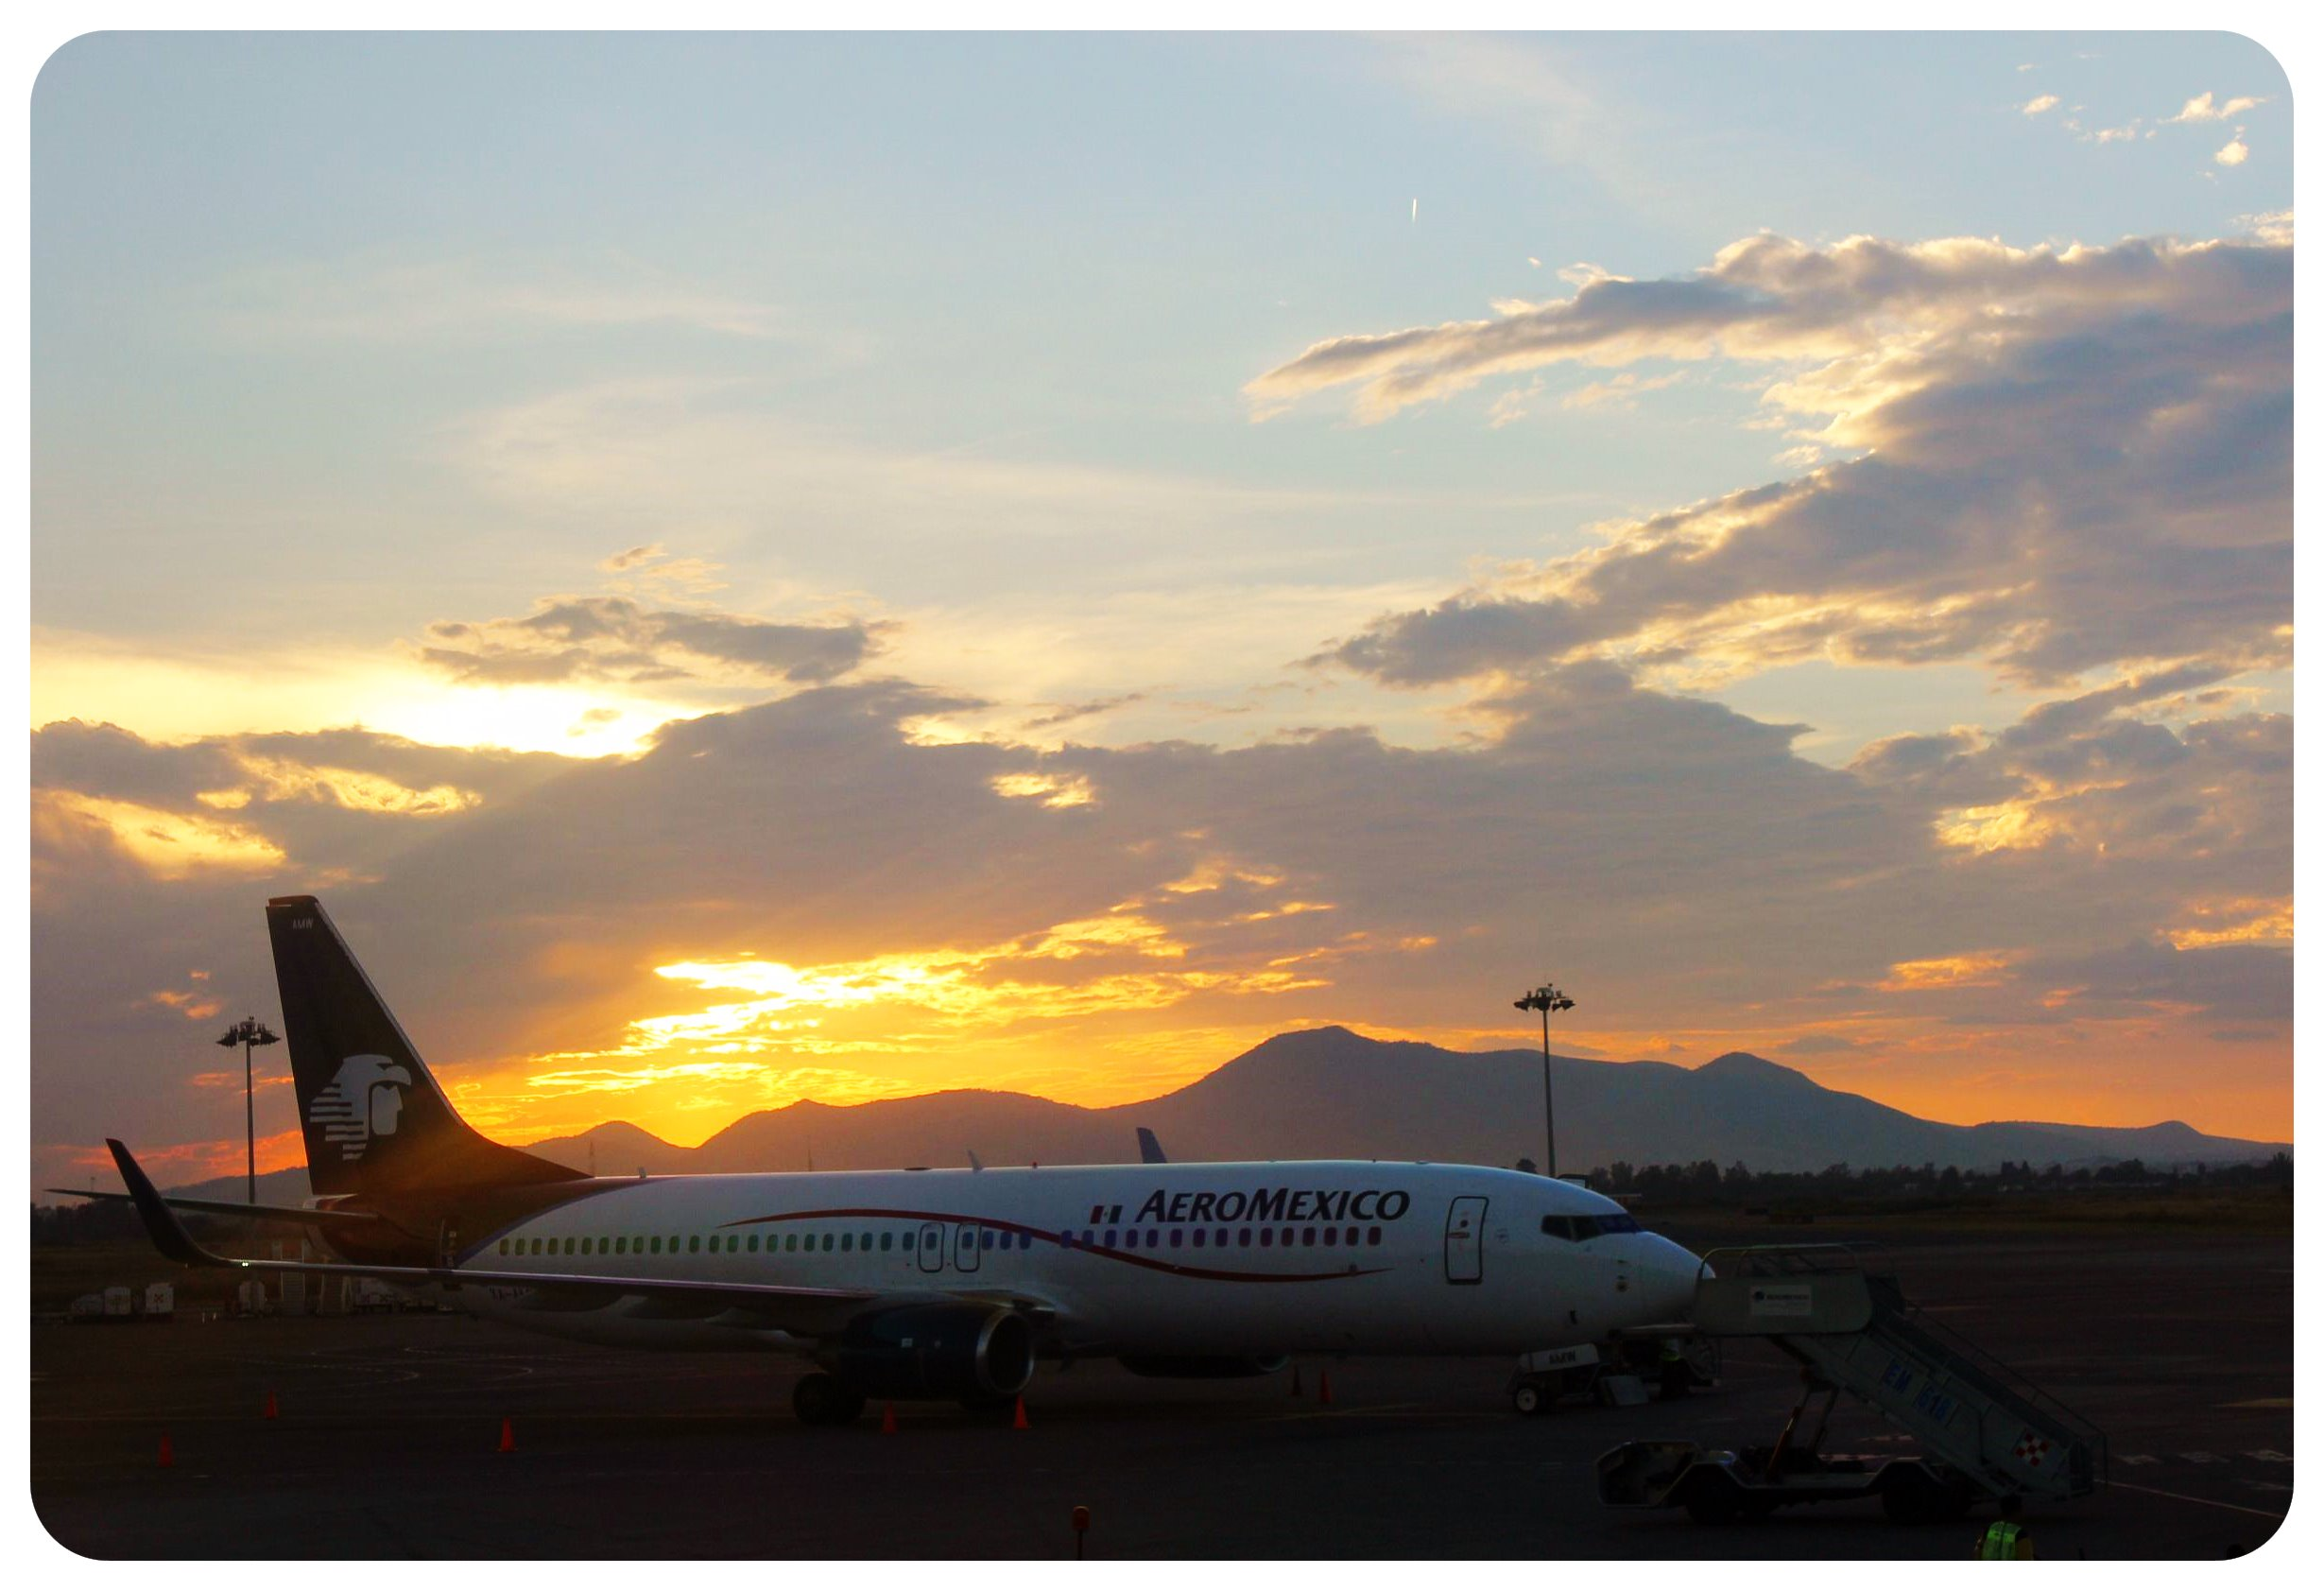 guadalajara airport sunset